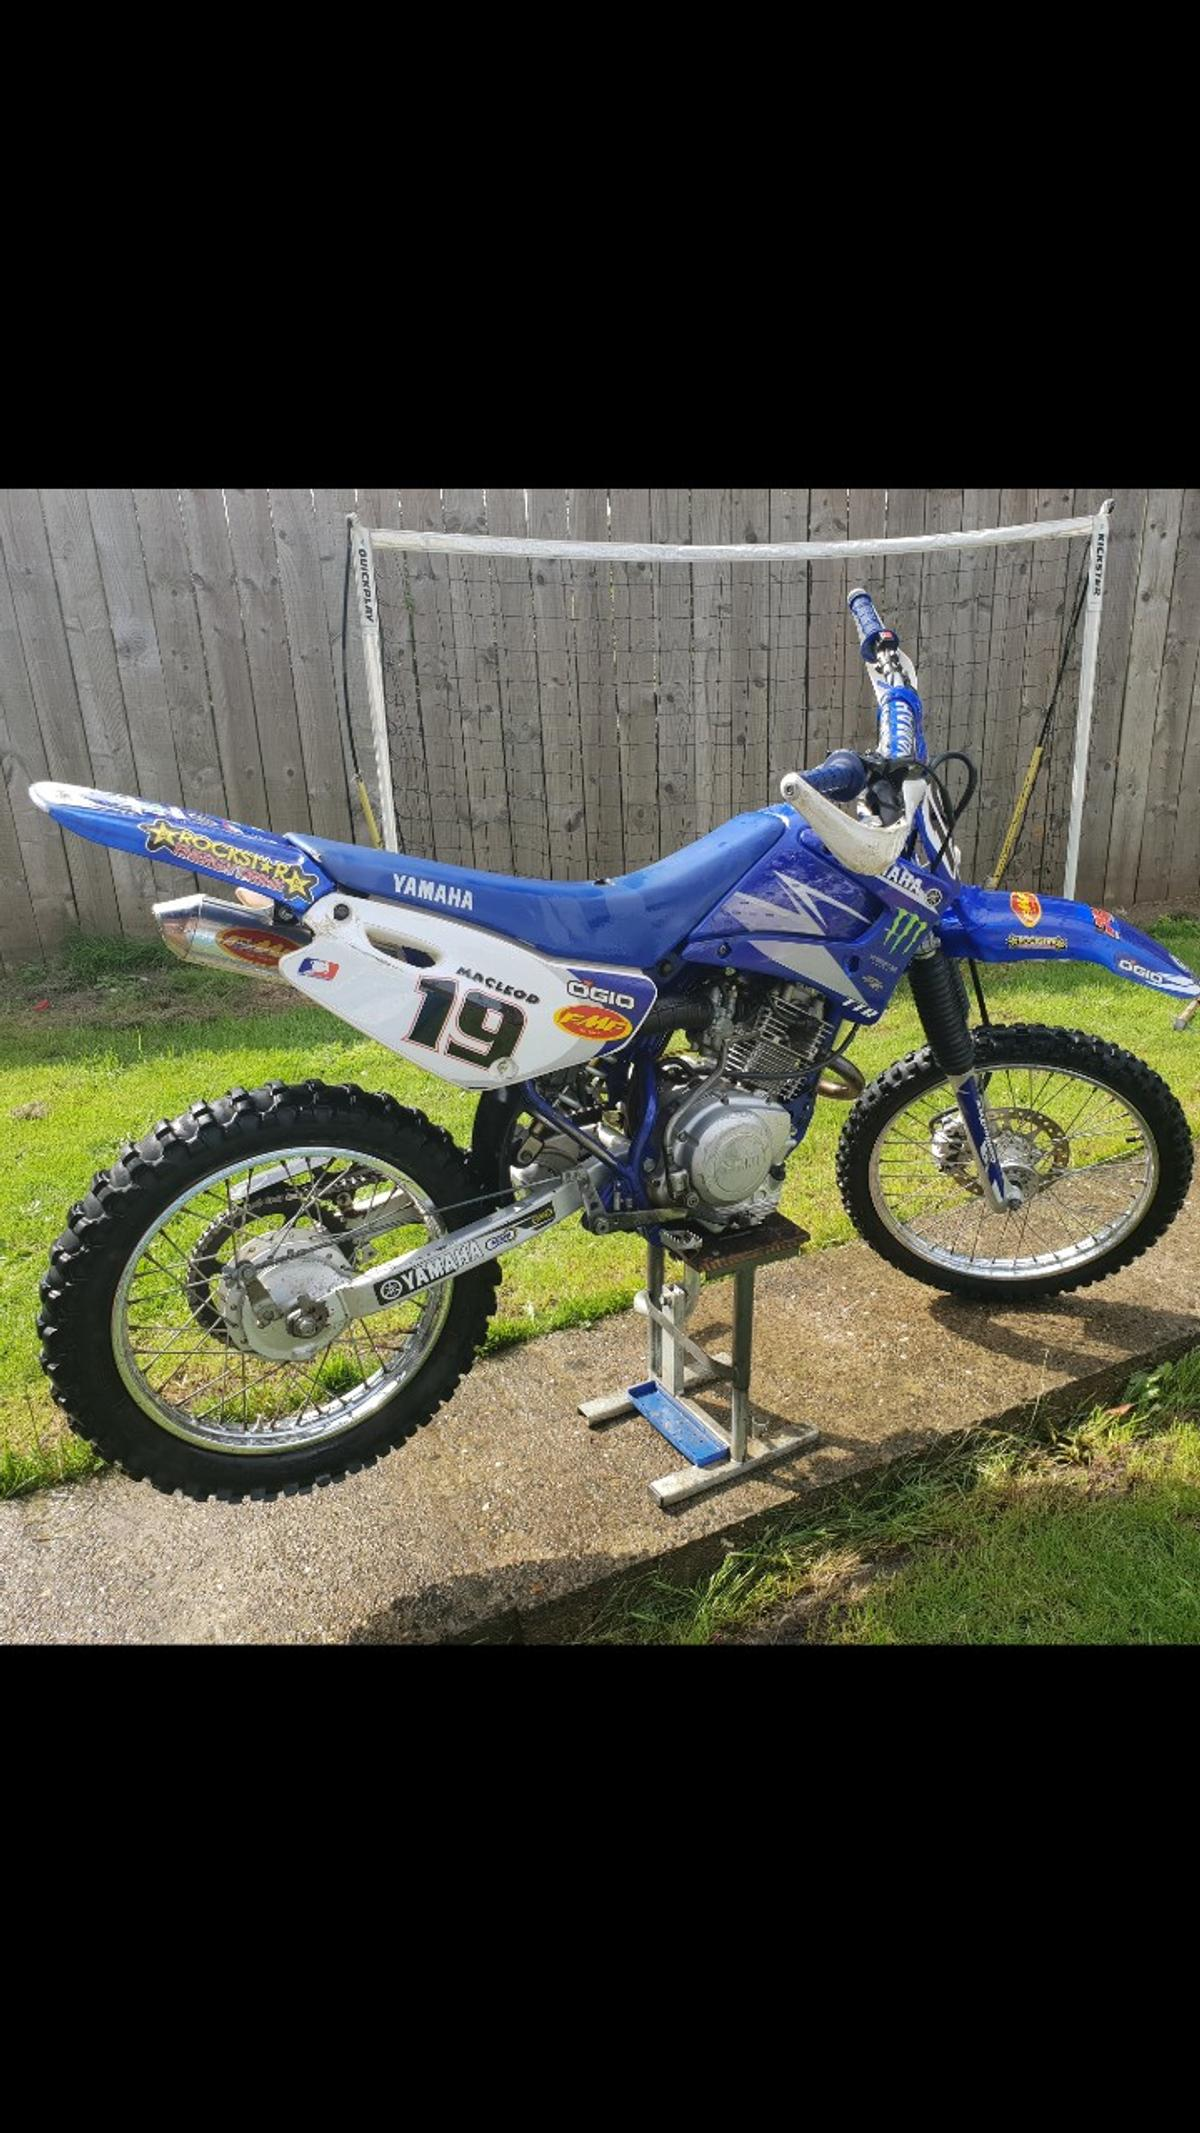 Yamaha ttr 150CC 4 stroke in Fishburn for £1,000 00 for sale